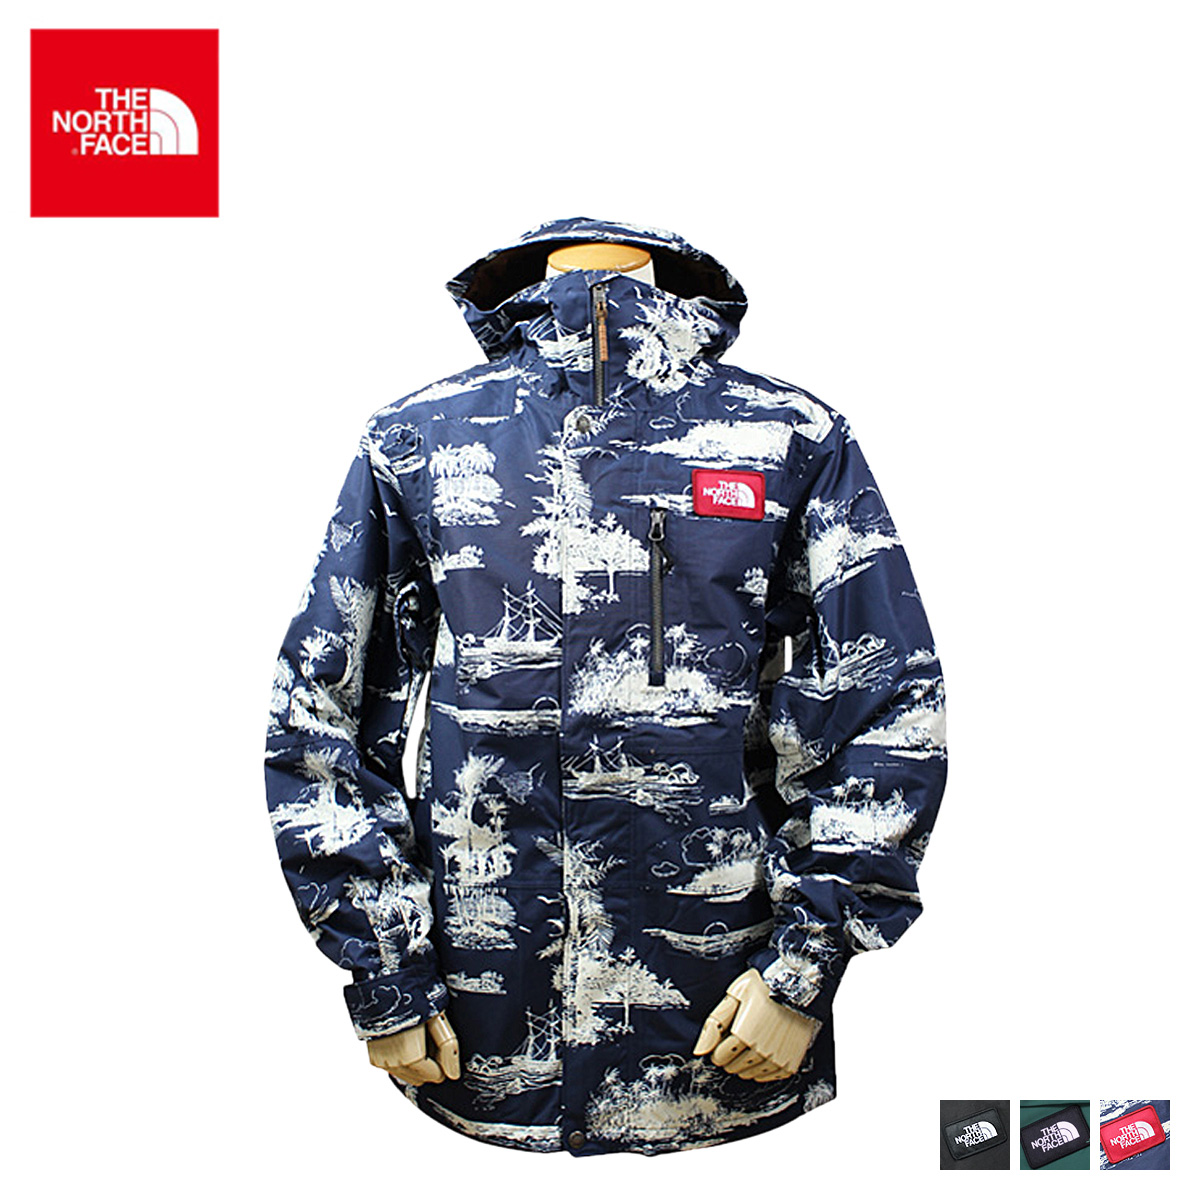 e012812ae3d2 THE NORTH FACE   ☆ MEN S DUBS INSULATED JACKET ☆ Mountain parka jacket    STYLE  C398